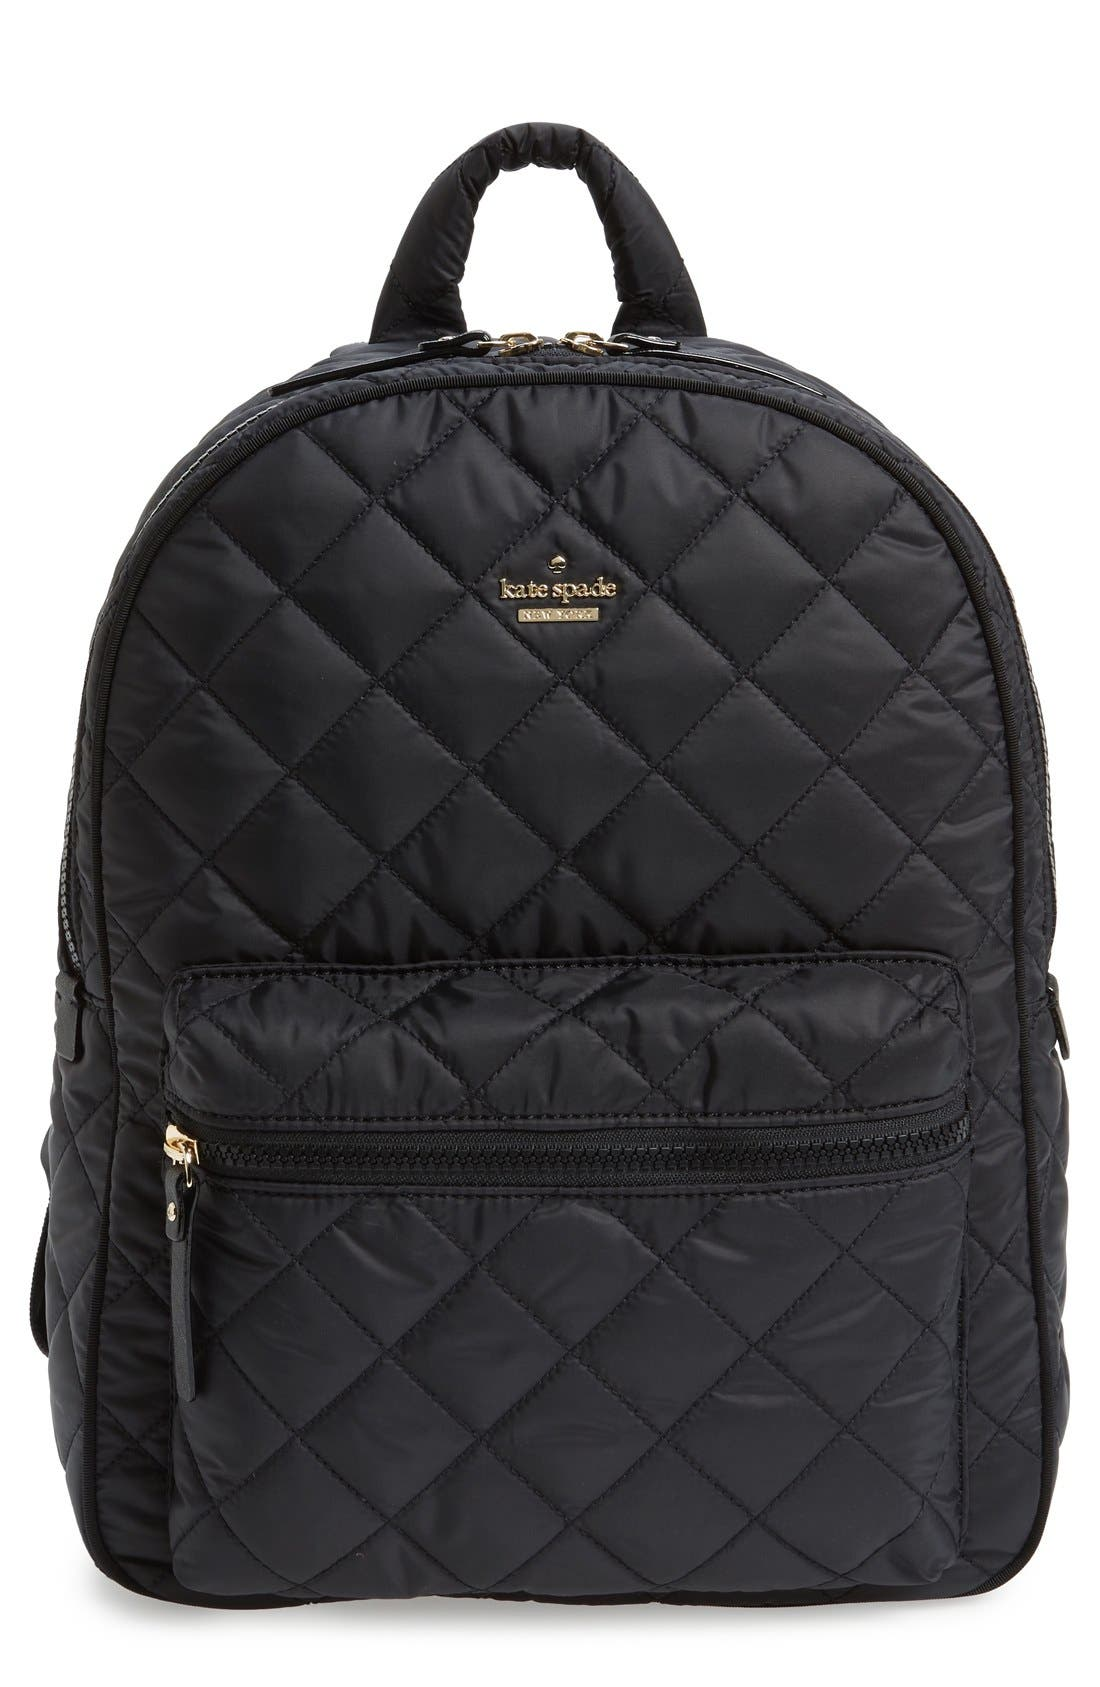 Main Image - kate spade new york 'ridge street siggy' quilted backpack